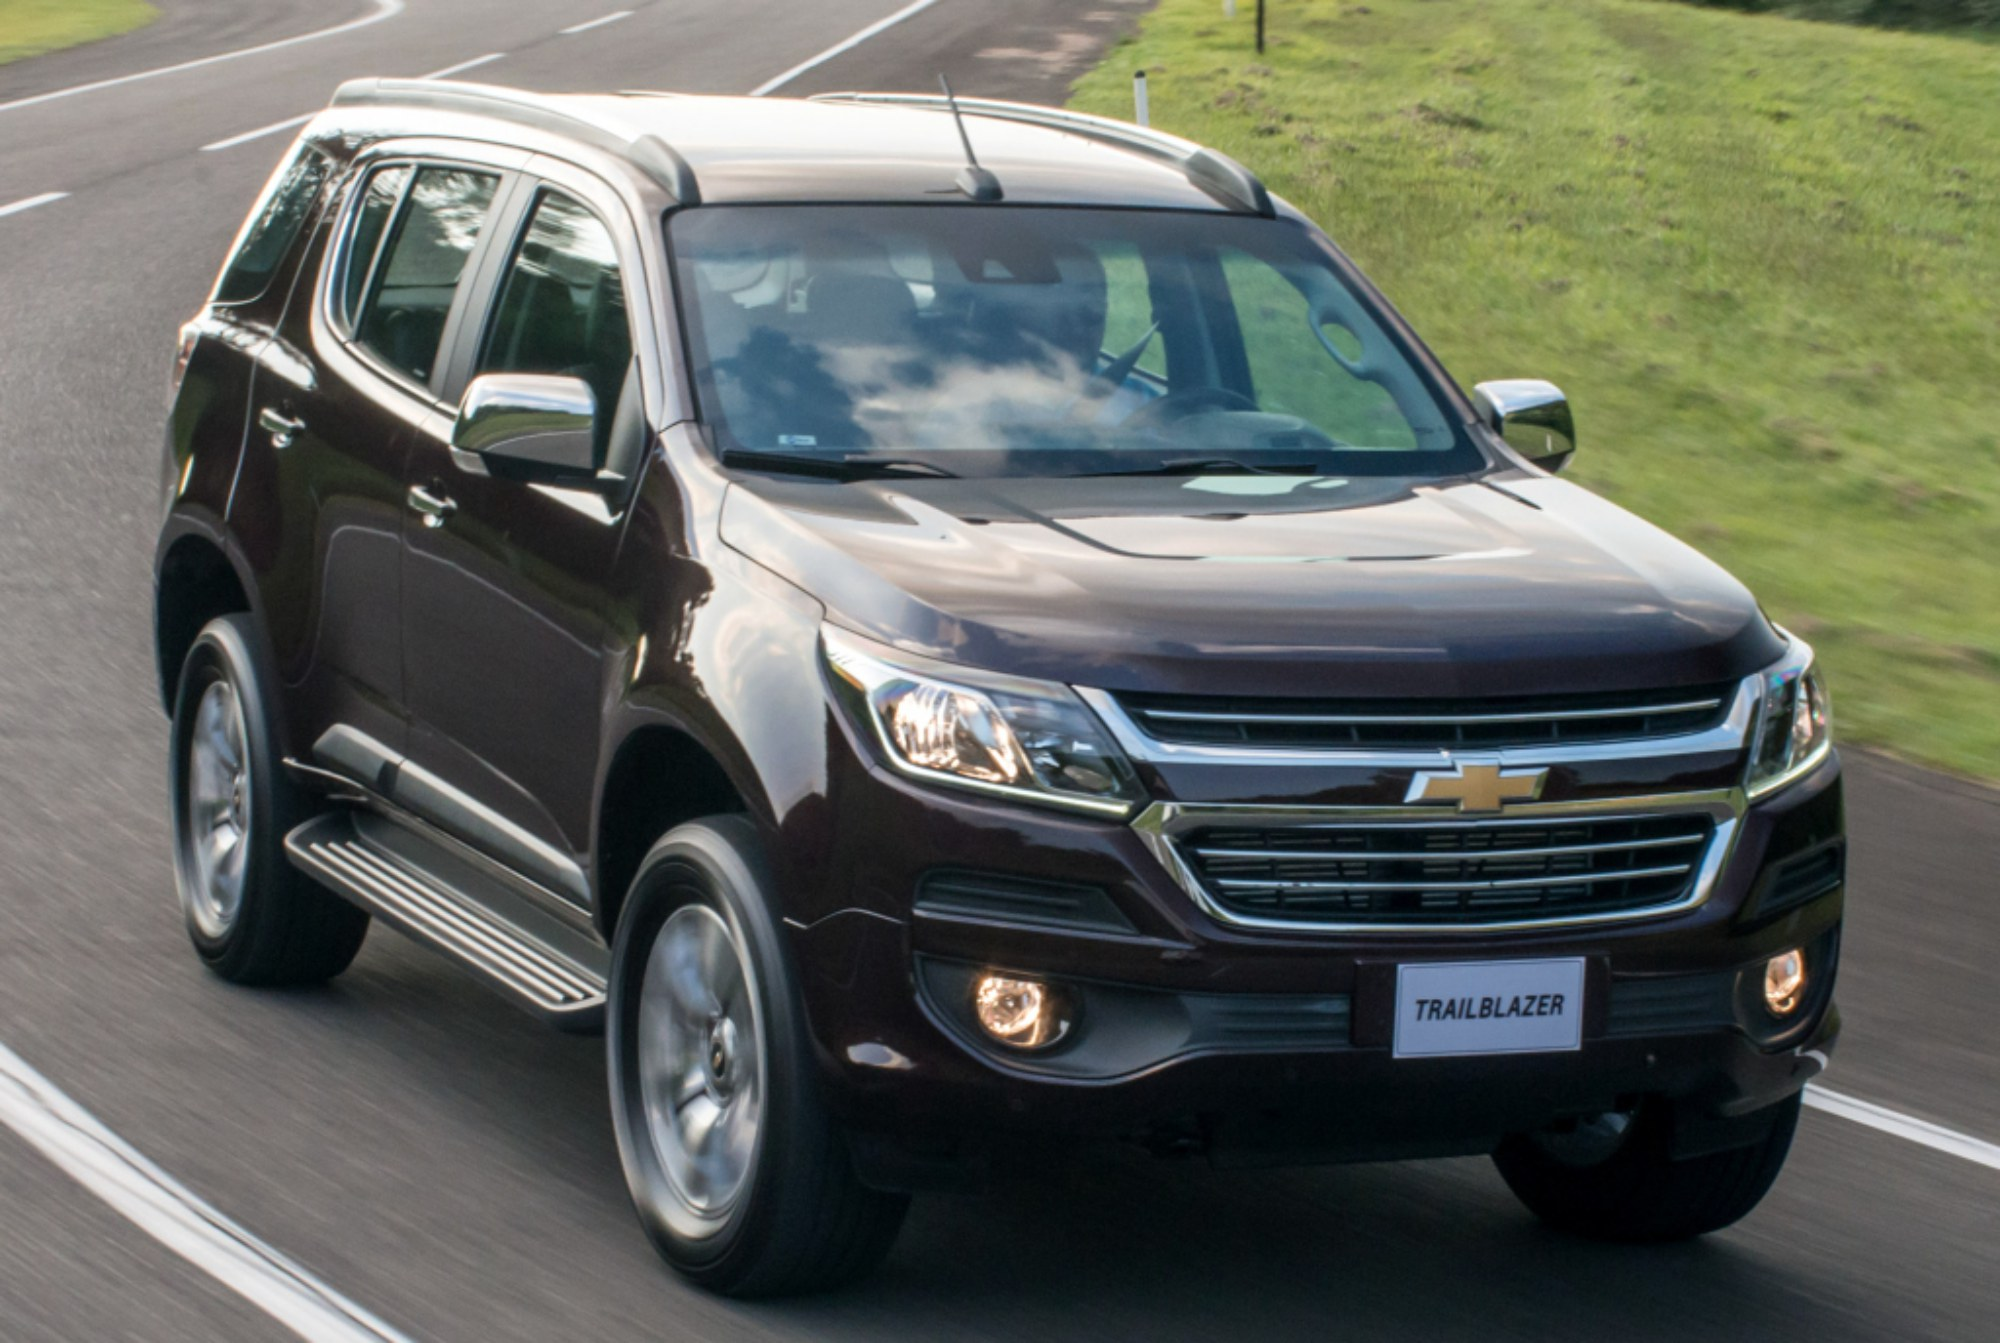 Nueva Honda Suv >> News - Holden Colorado 7 Renamed To Trailblazer, Arriving Later 2016